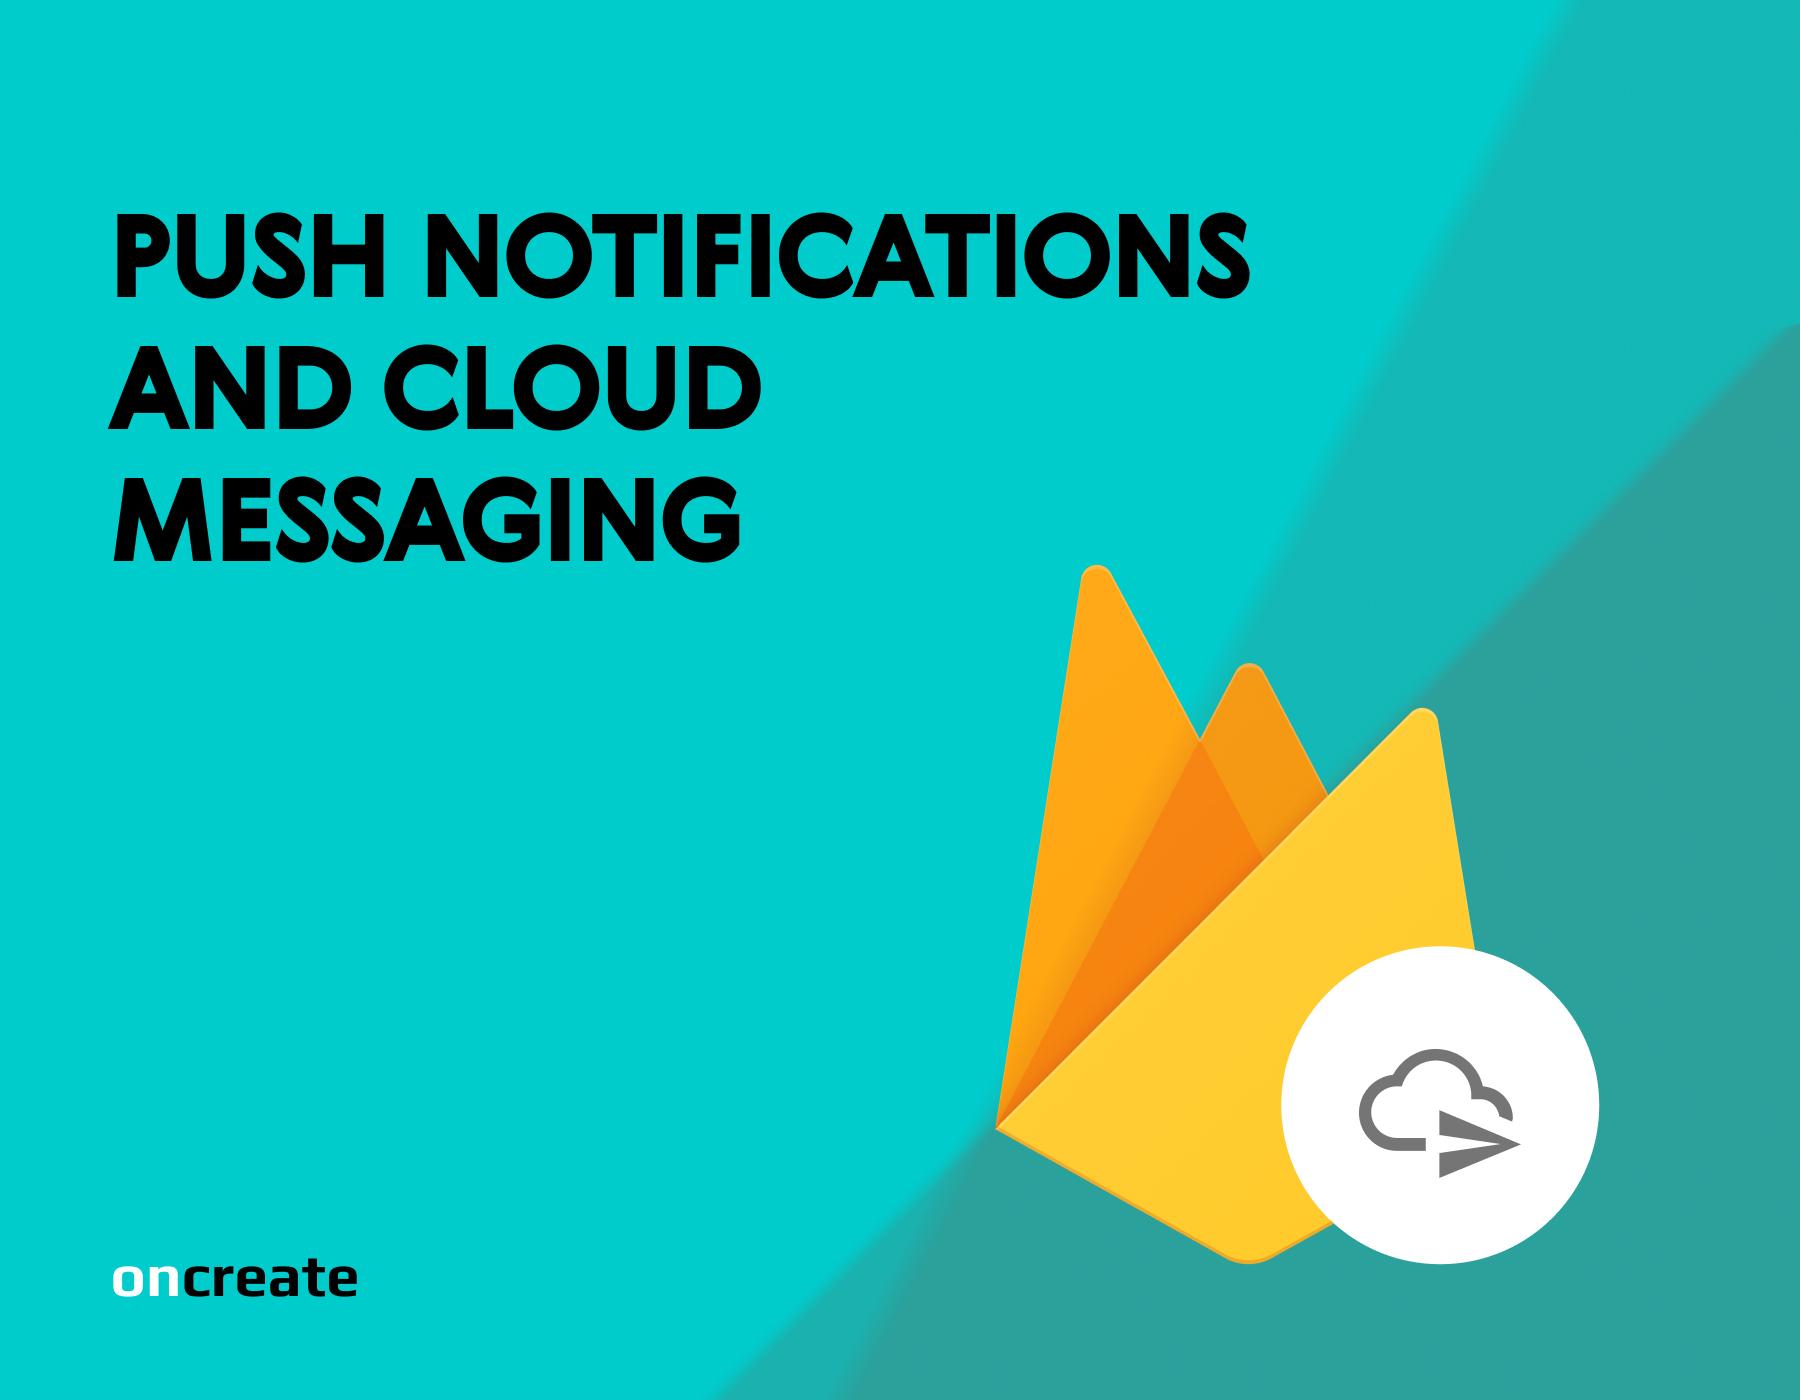 Push Notifications and Cloud Messages